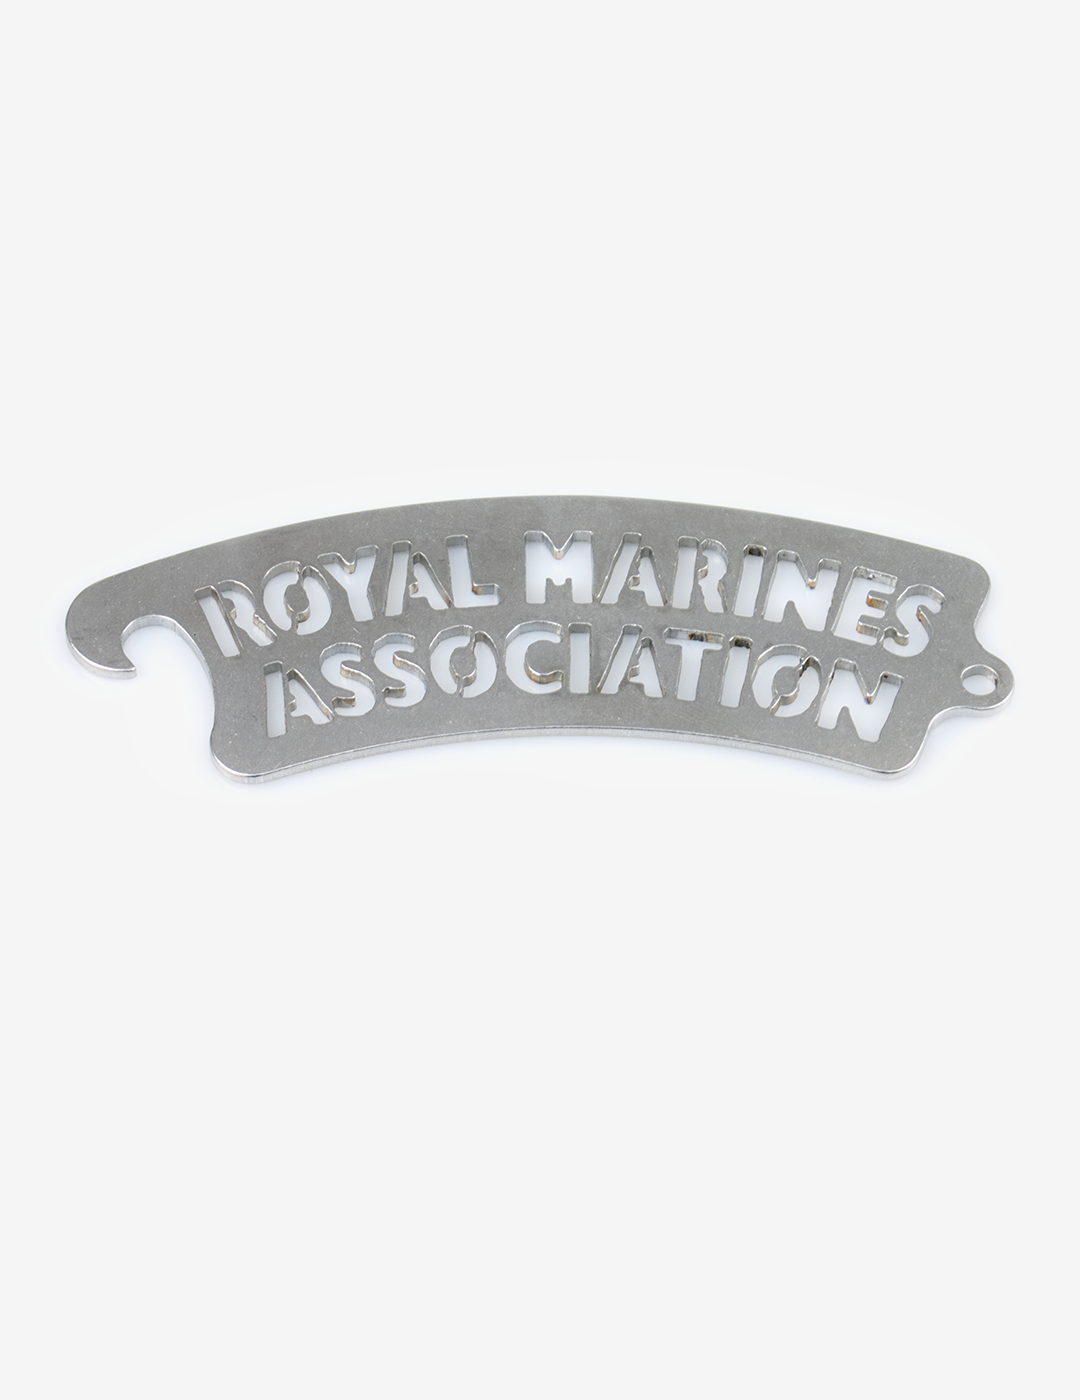 Royal Marines Association Bottle Opener and Keyring